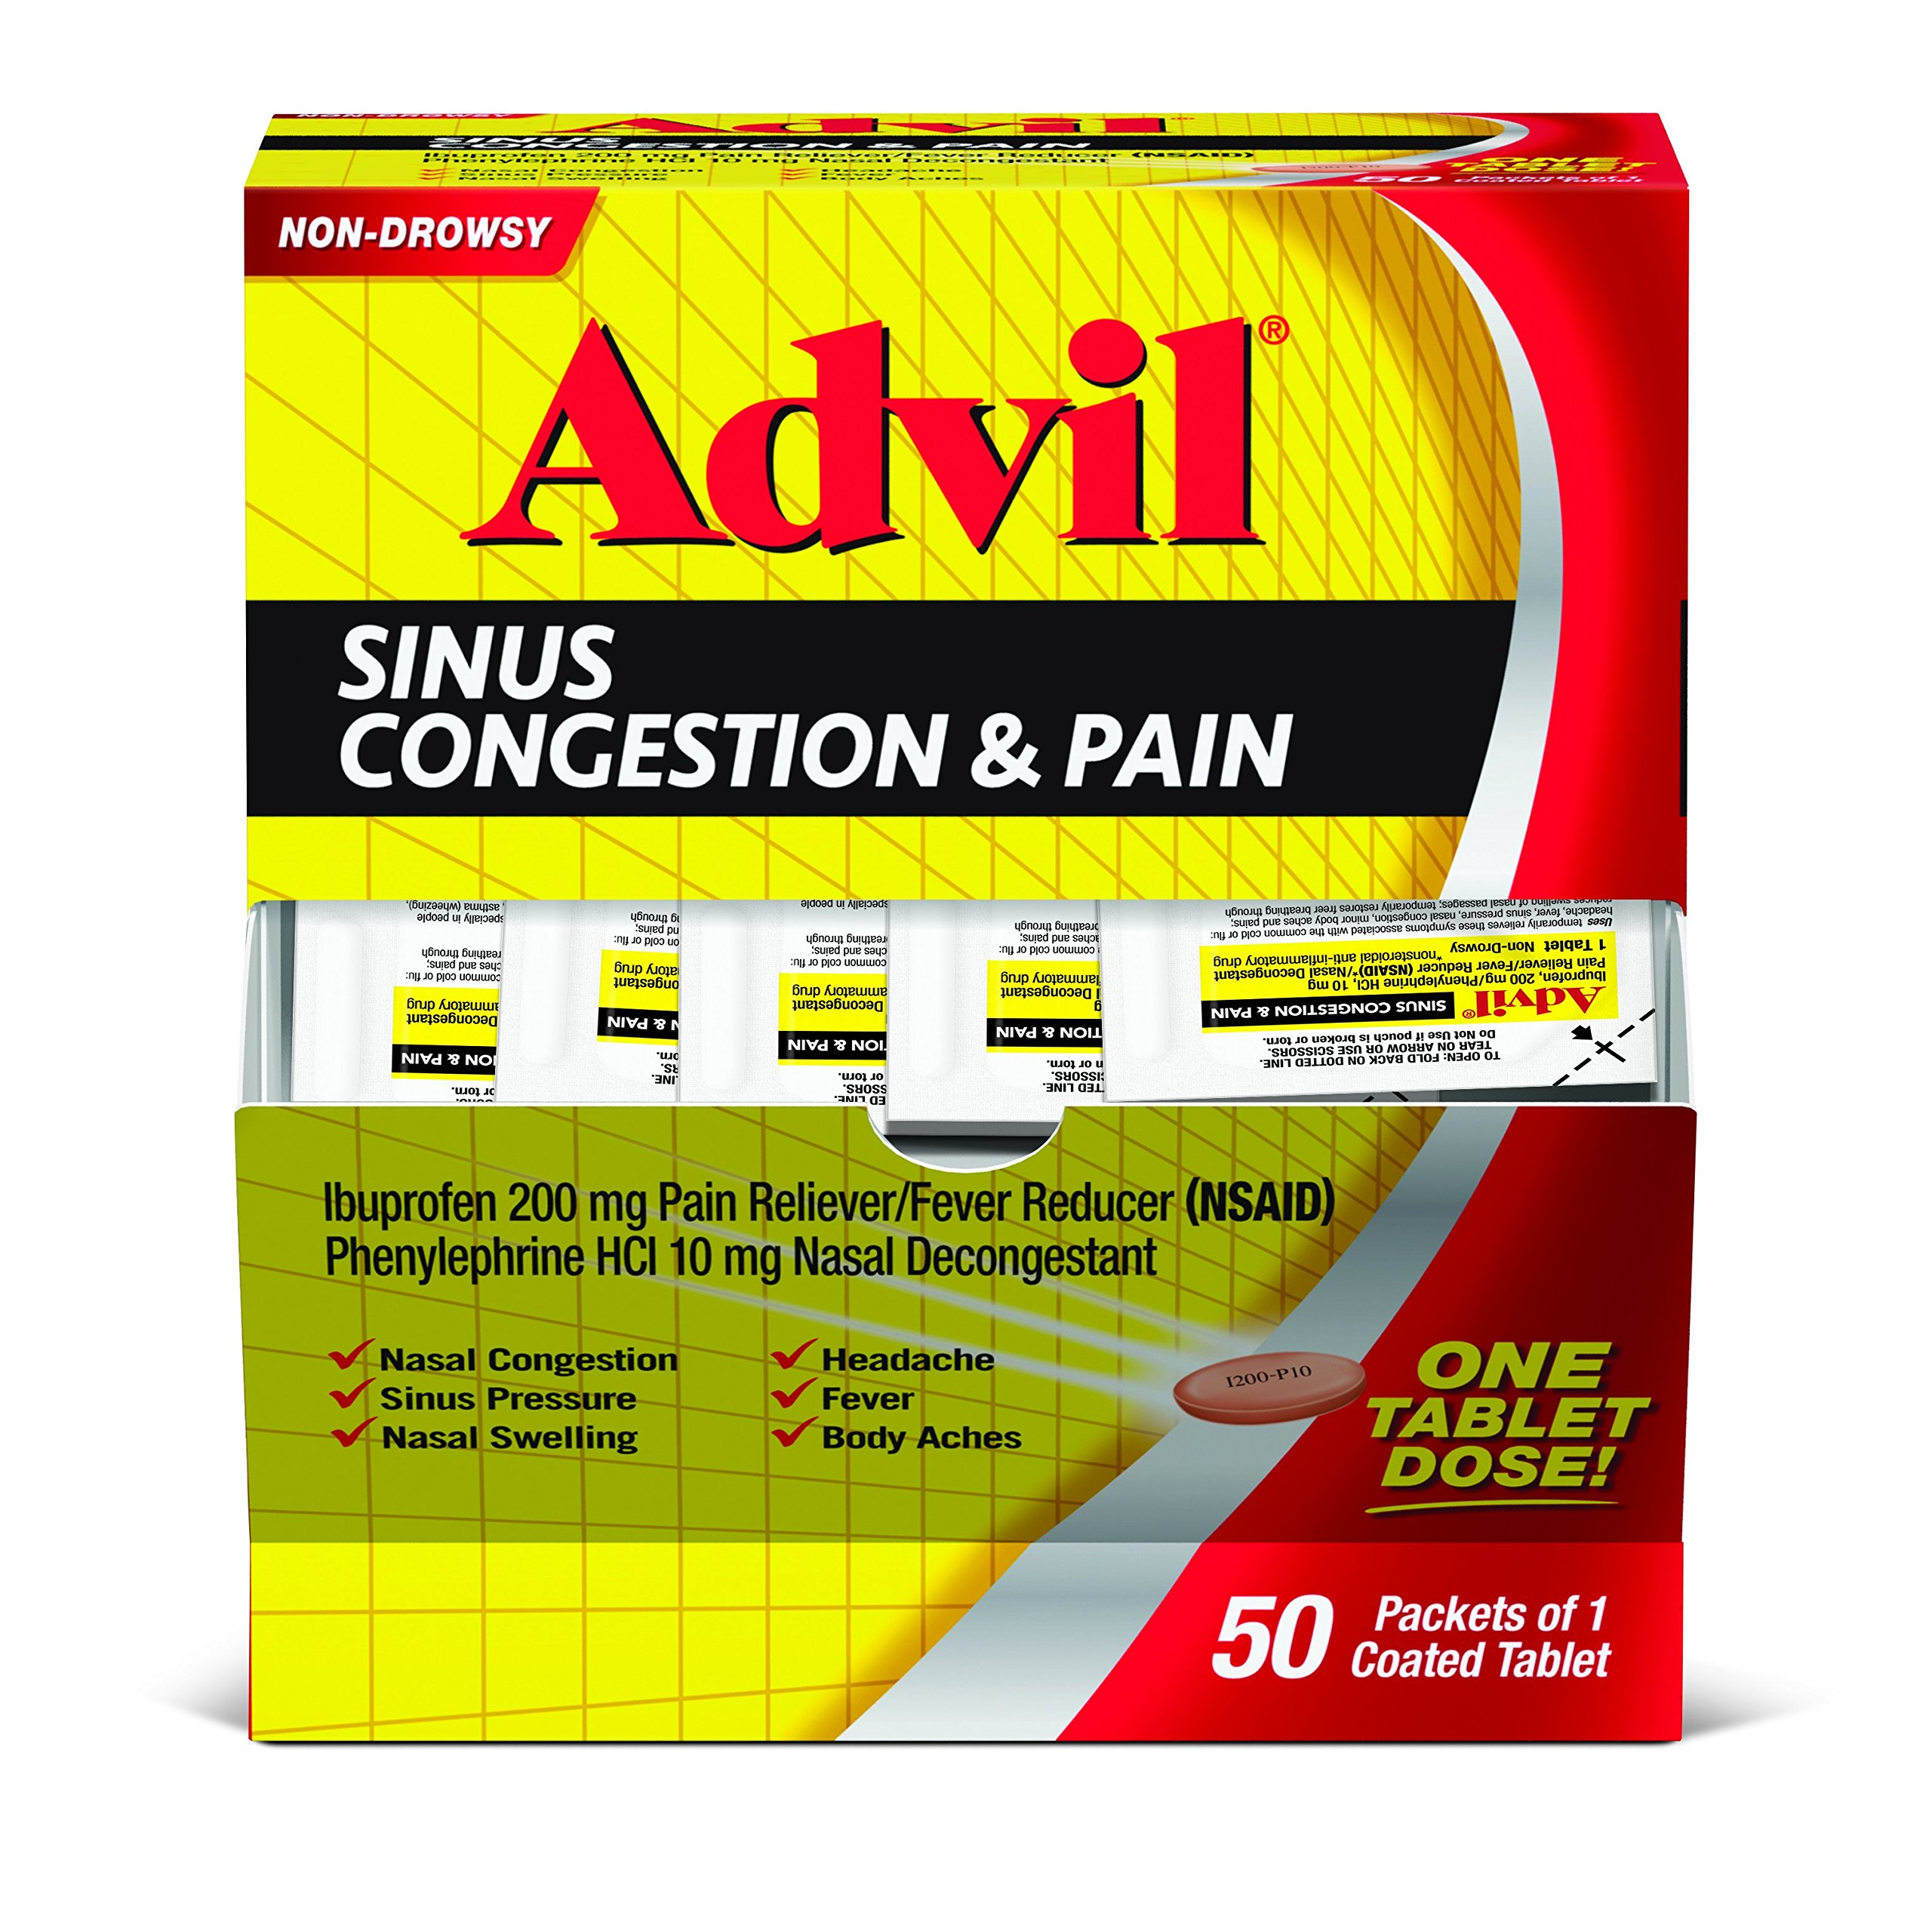 Advil Sinus Congestion & Pain (50 Count) Pain Reliever/Fever Reducer Coated Tablet, 200mg Ibuprofen, Nasal Decongestant, Sinus Pressure